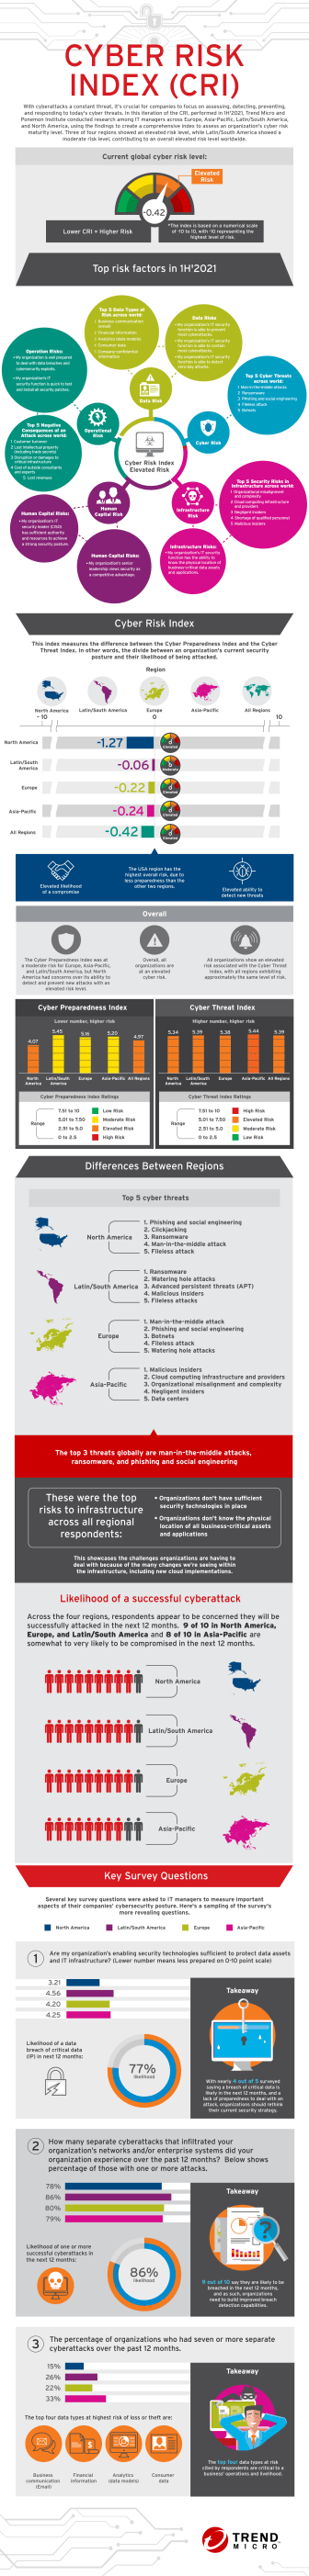 Cyber_Risk_Index_Infographic.pdf